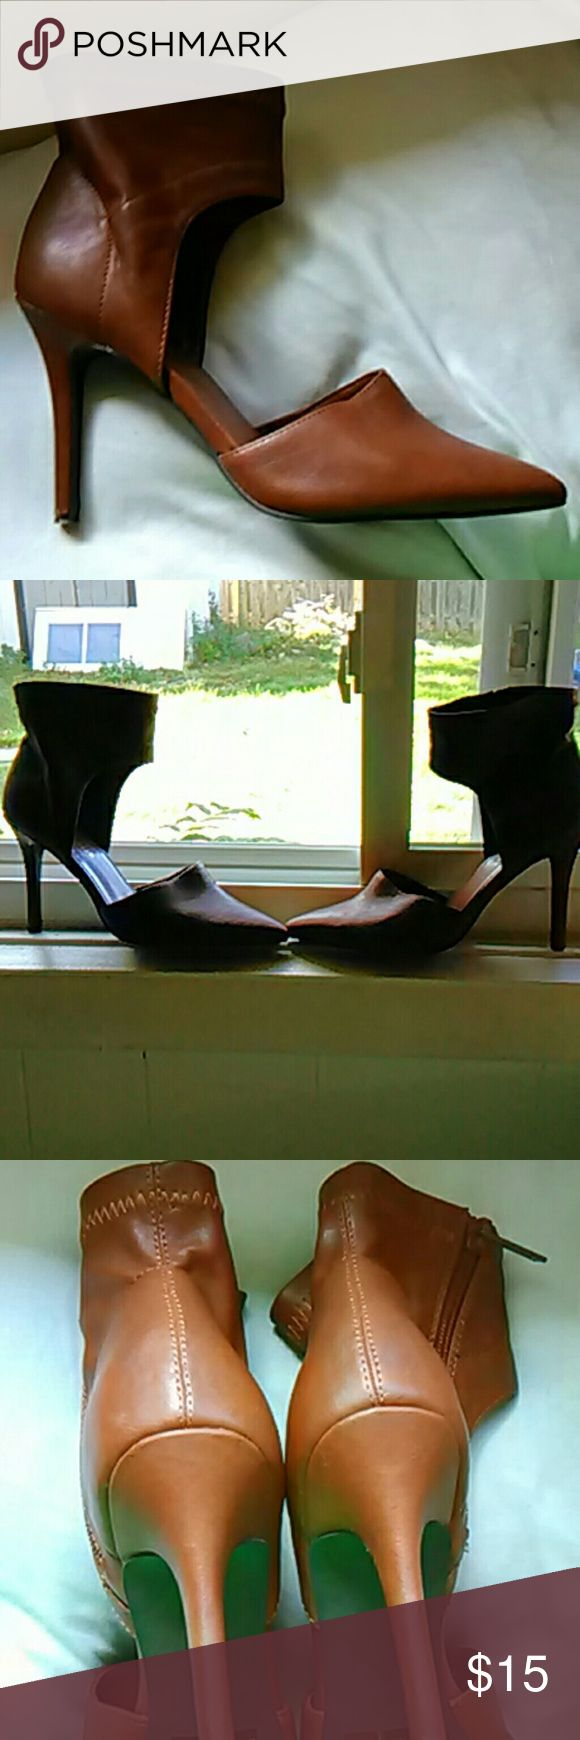 Breckelles heels size 8 Beautiful Chestnut Hills. In good condition very sexy very well-made. These shoes are very comfortable they have a zipper on the side Breckelles Shoes Heels